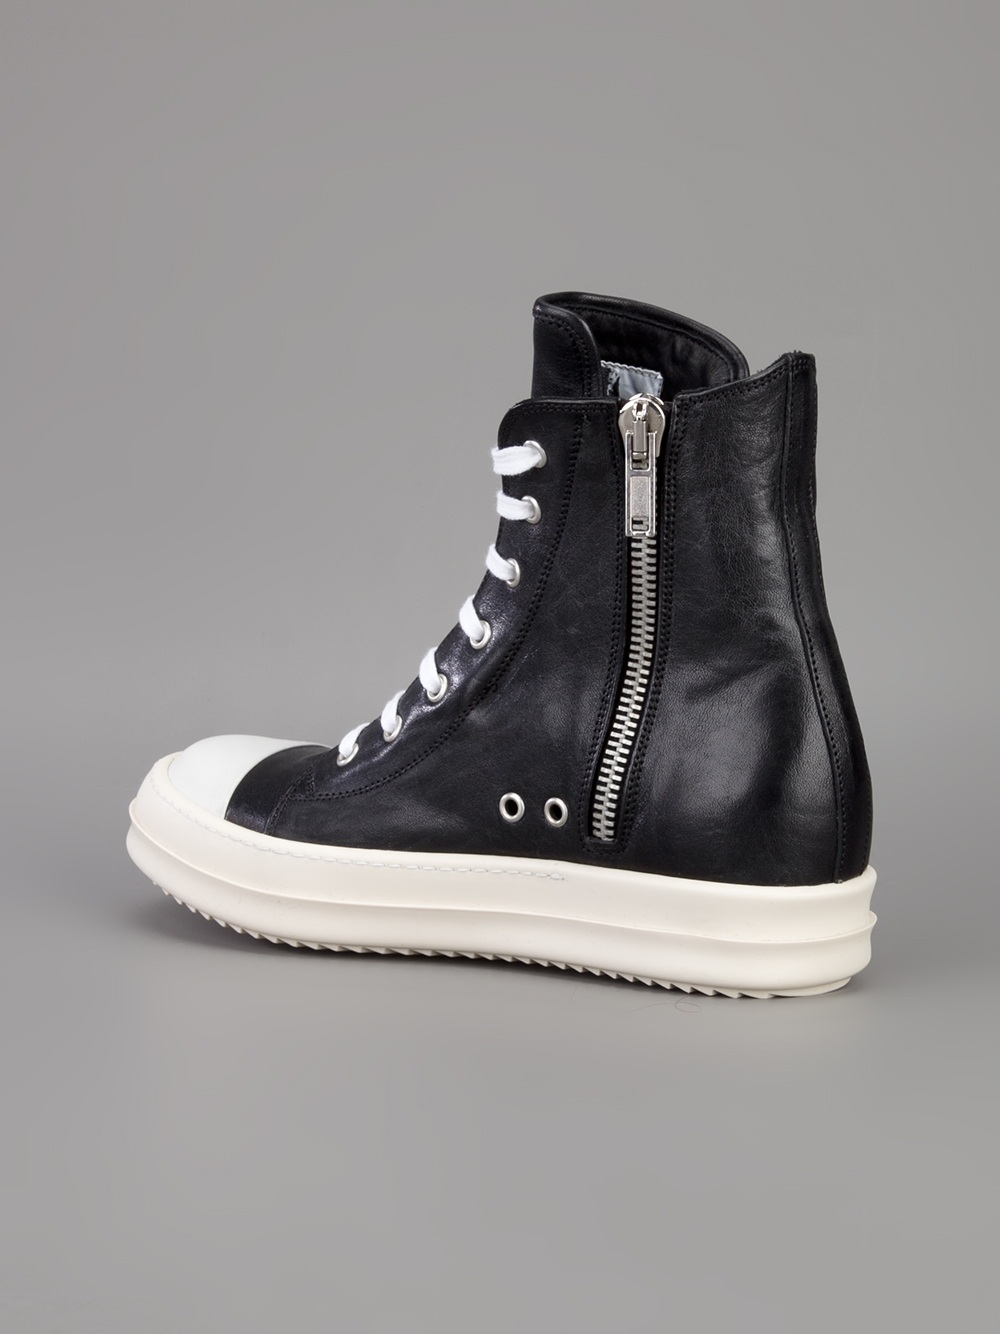 Rick OwensLeather High Trainers vLJ3HszvtL